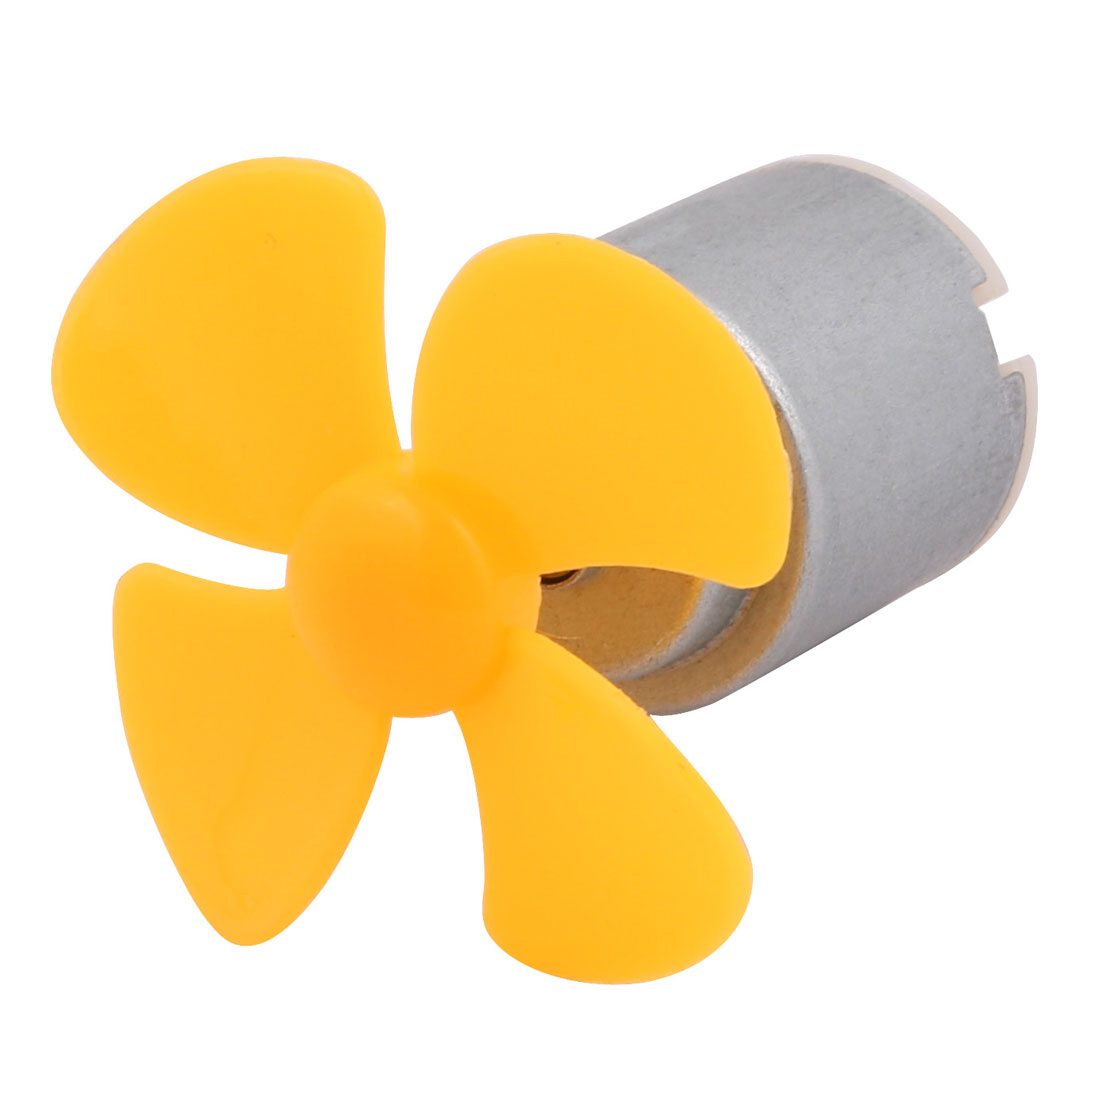 DC 3V 13000RPM High Torque Motor 4 Vanes 40mm Dia Aircraft DIY Propeller Yellow